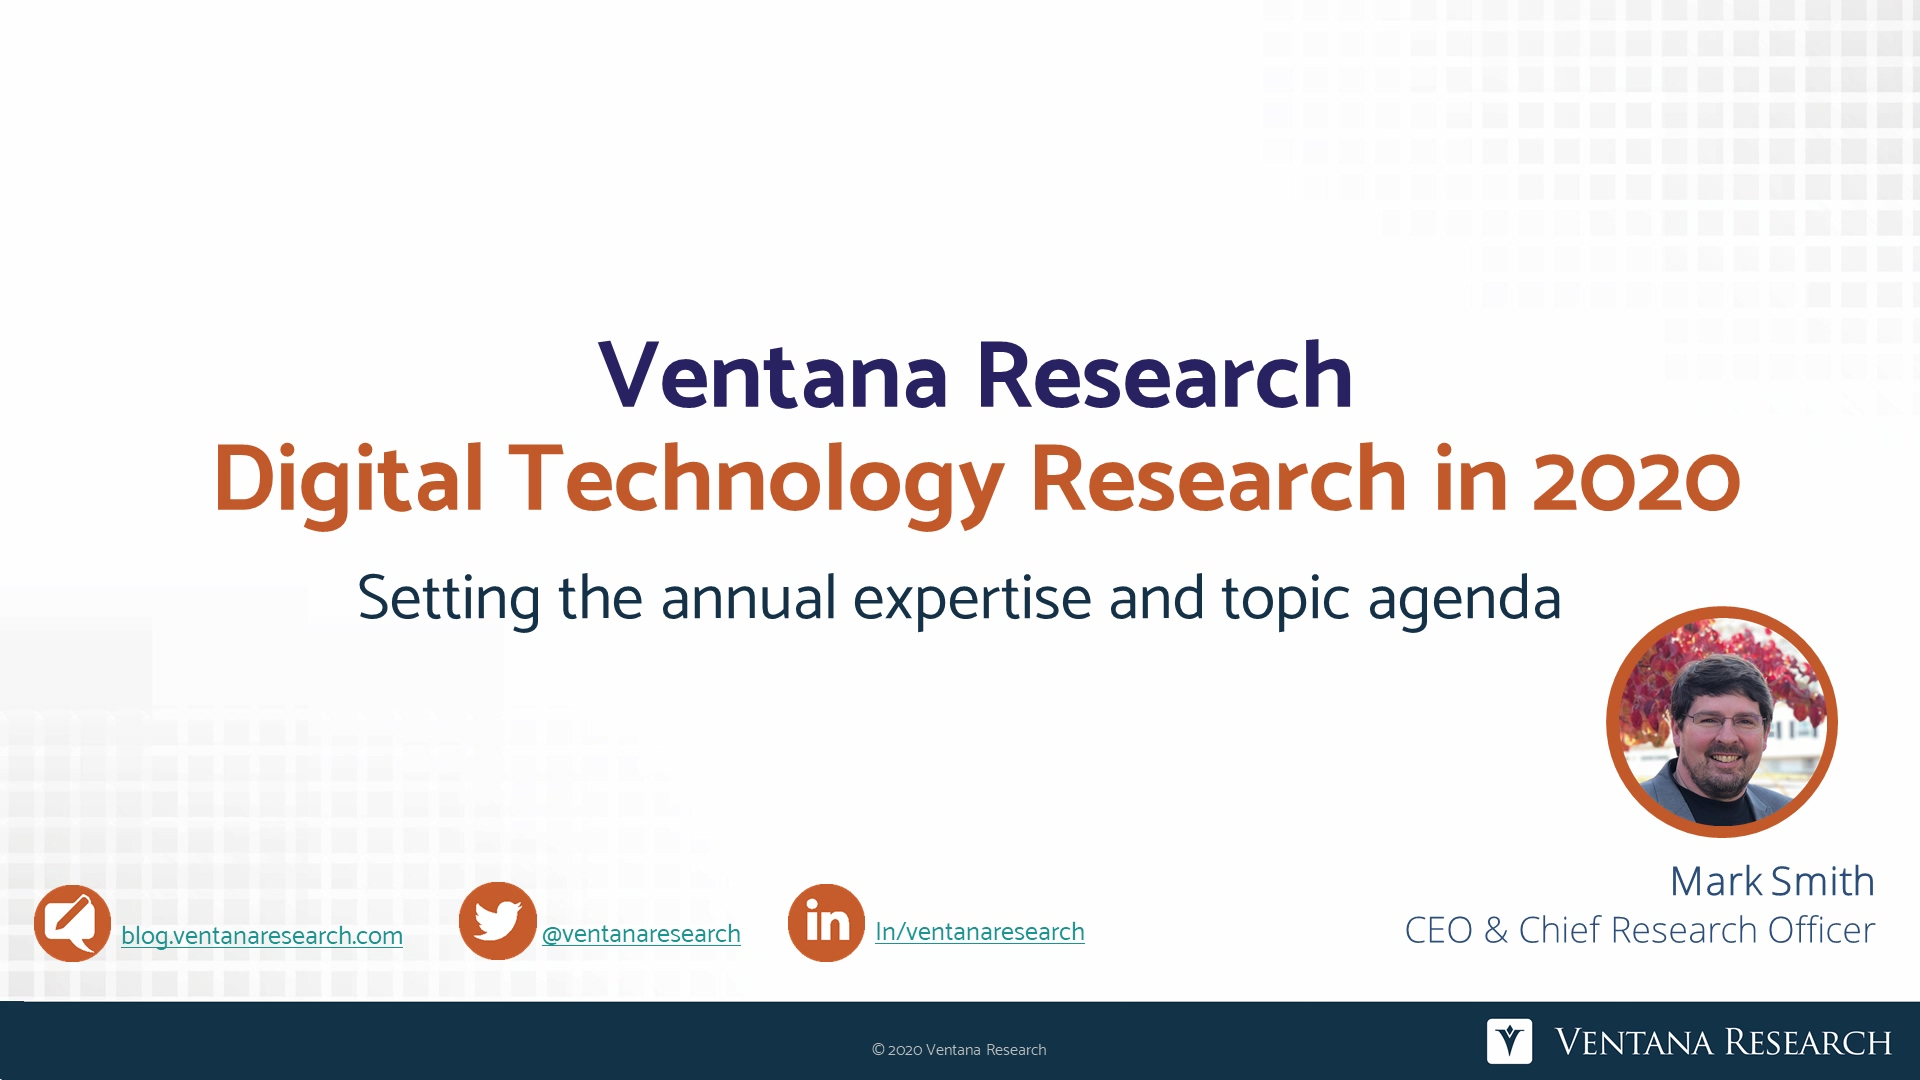 Ventana_Research_2020_Digital_Technology_Research_Agenda